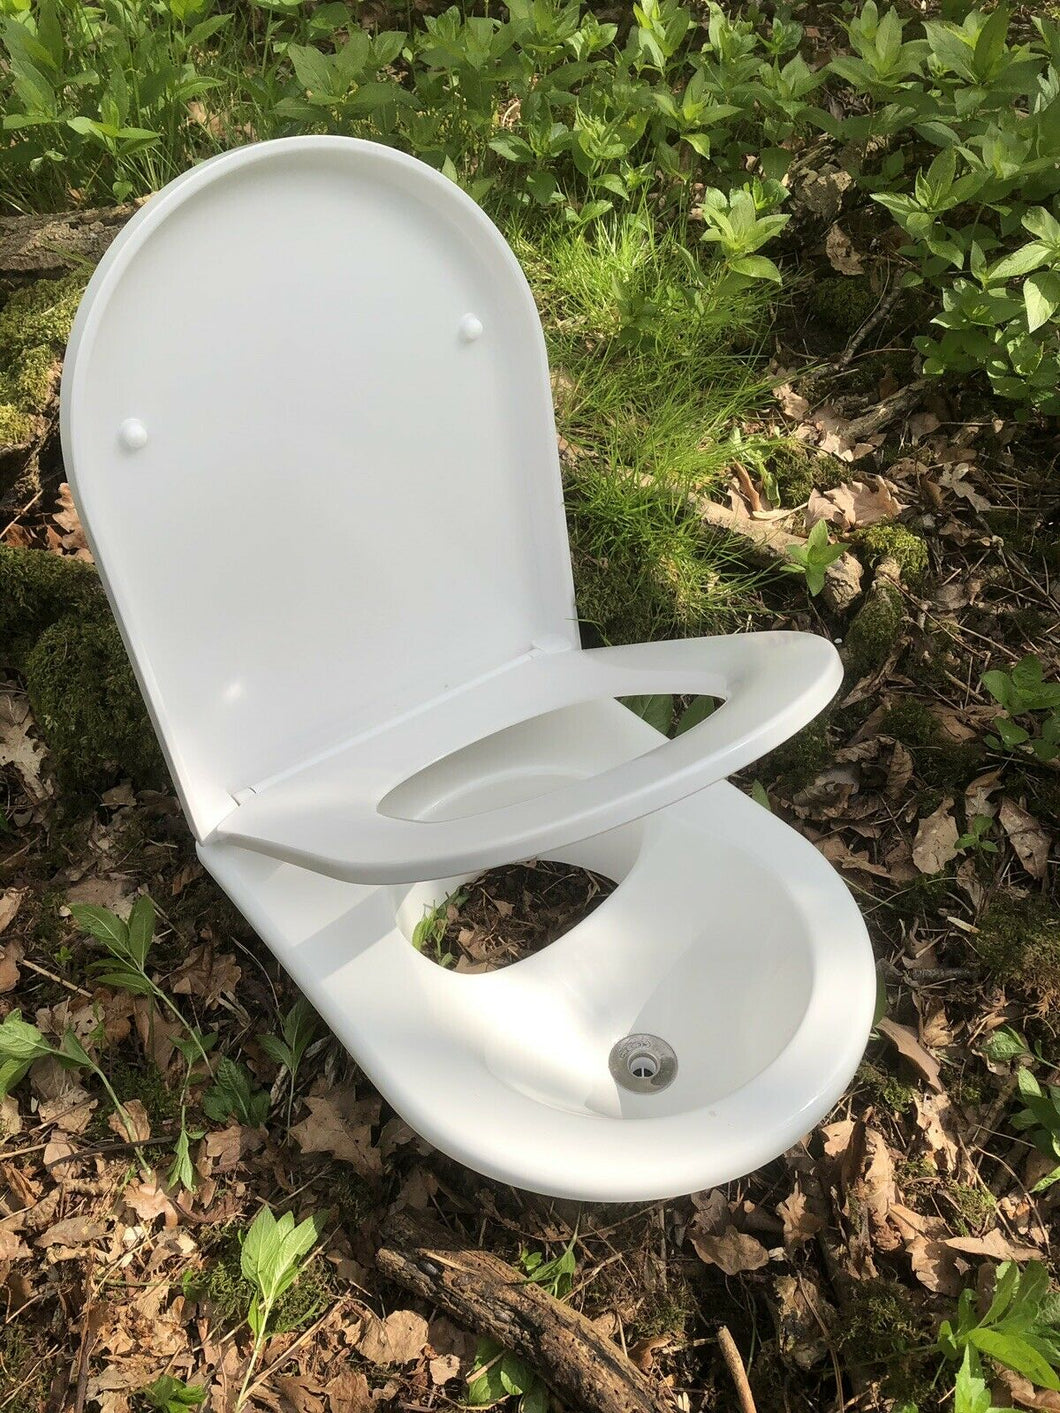 Deluxe Urine diverter for Eco composting toilet /separator with soft close seat